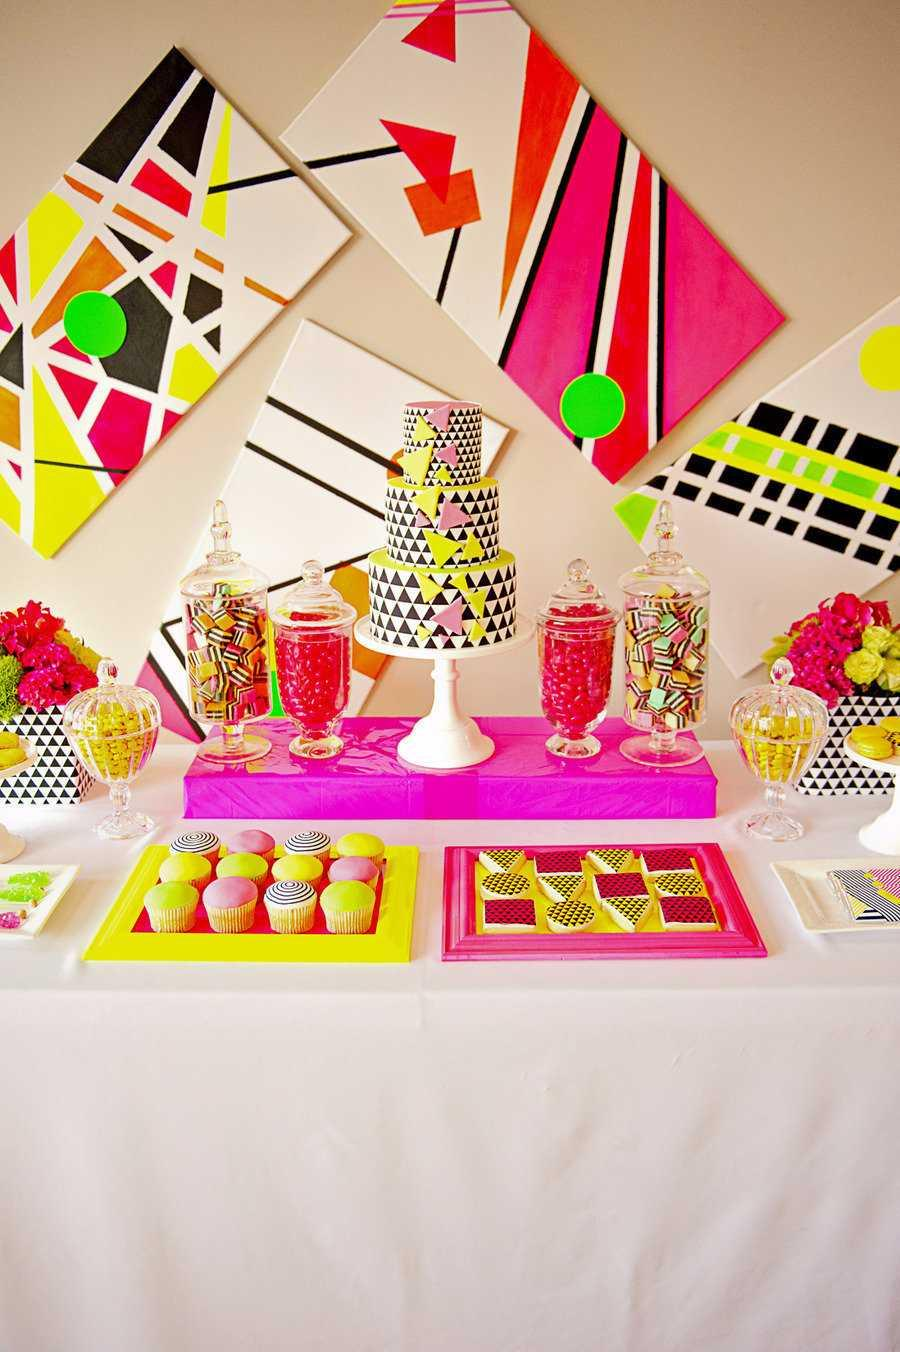 Festa Neon: 60 decorating ideas and theme 3 photos